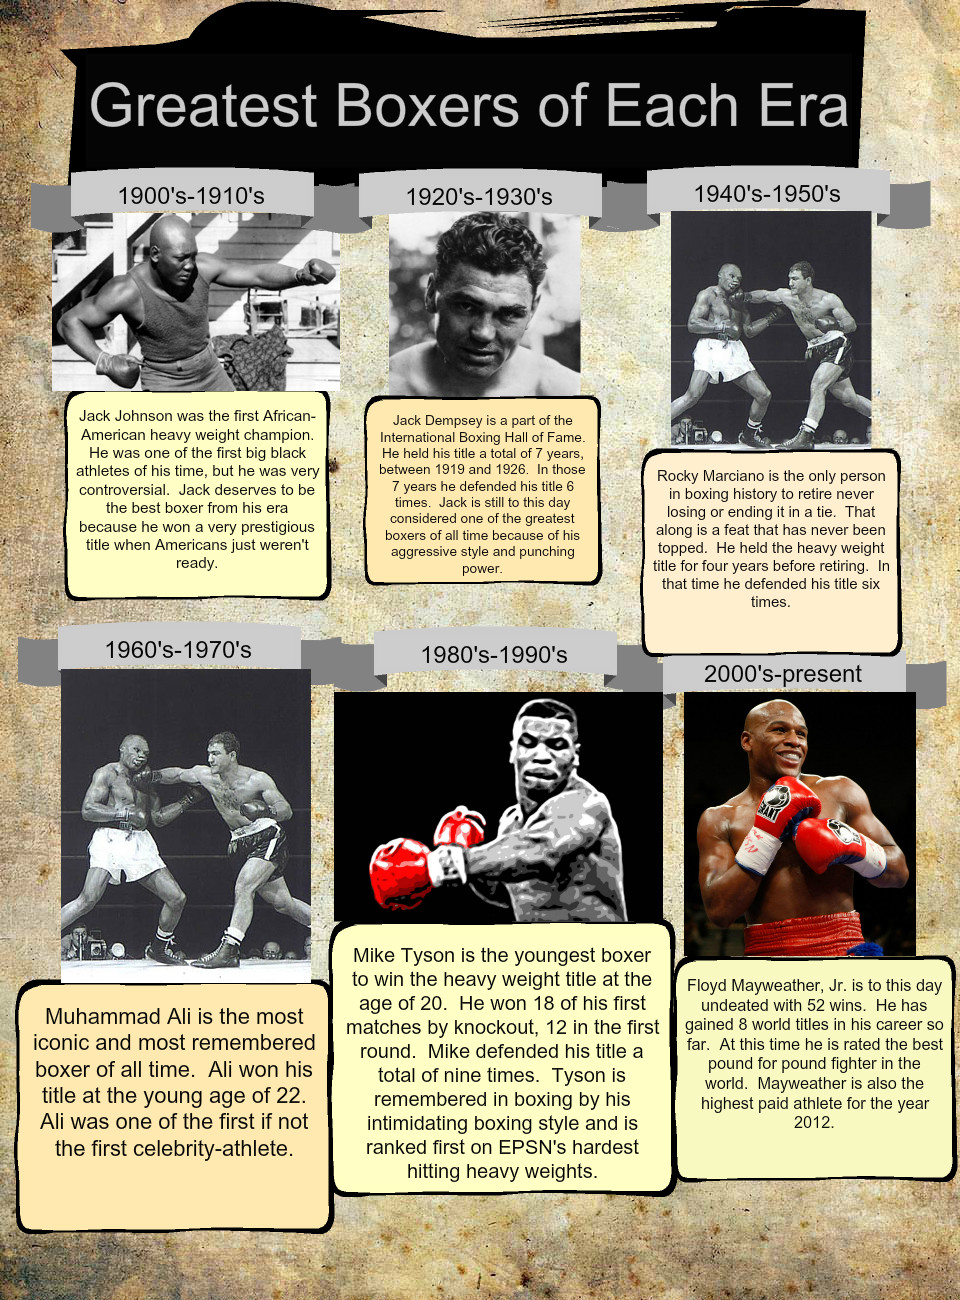 Greatest Boxers of Each Era